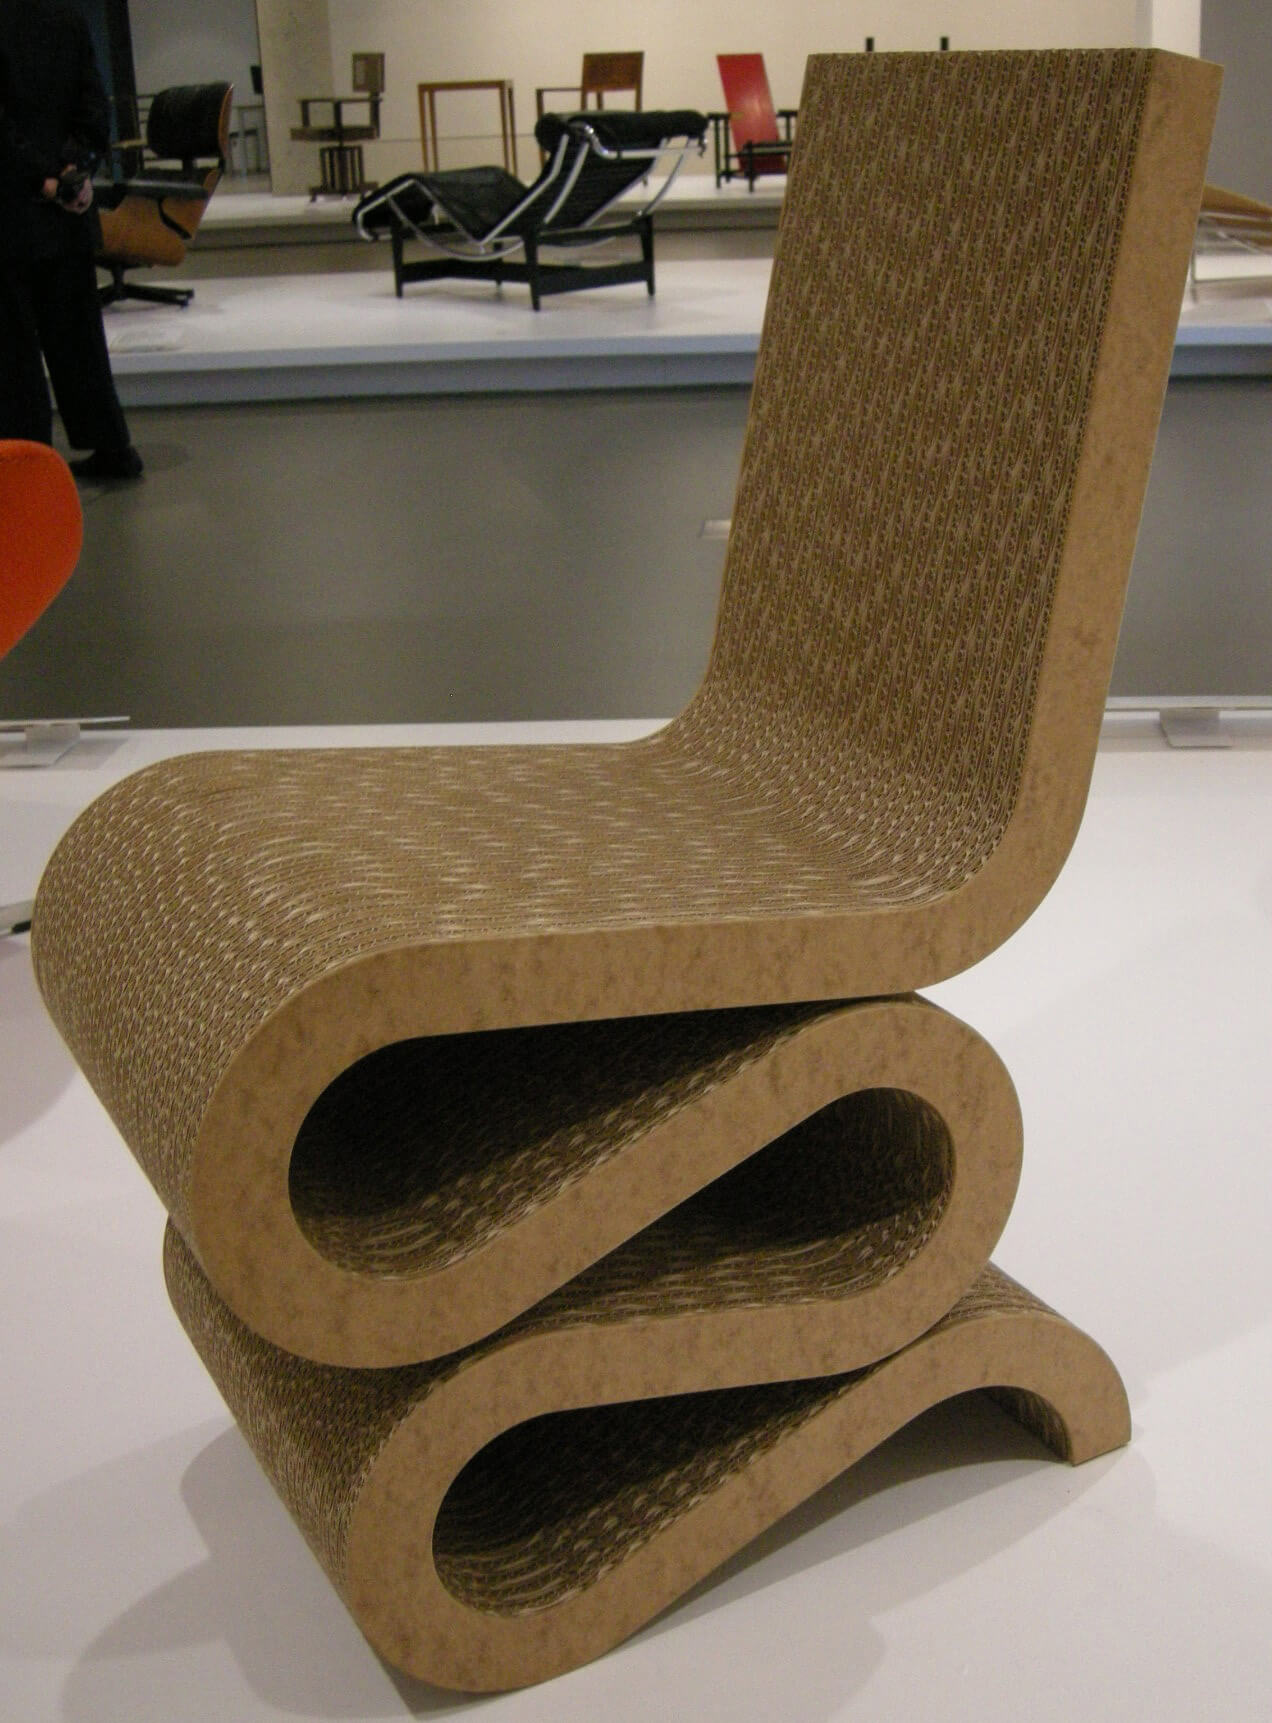 Cardboard furniture by Frank Gehry  | Frank Gehry | STIRworld